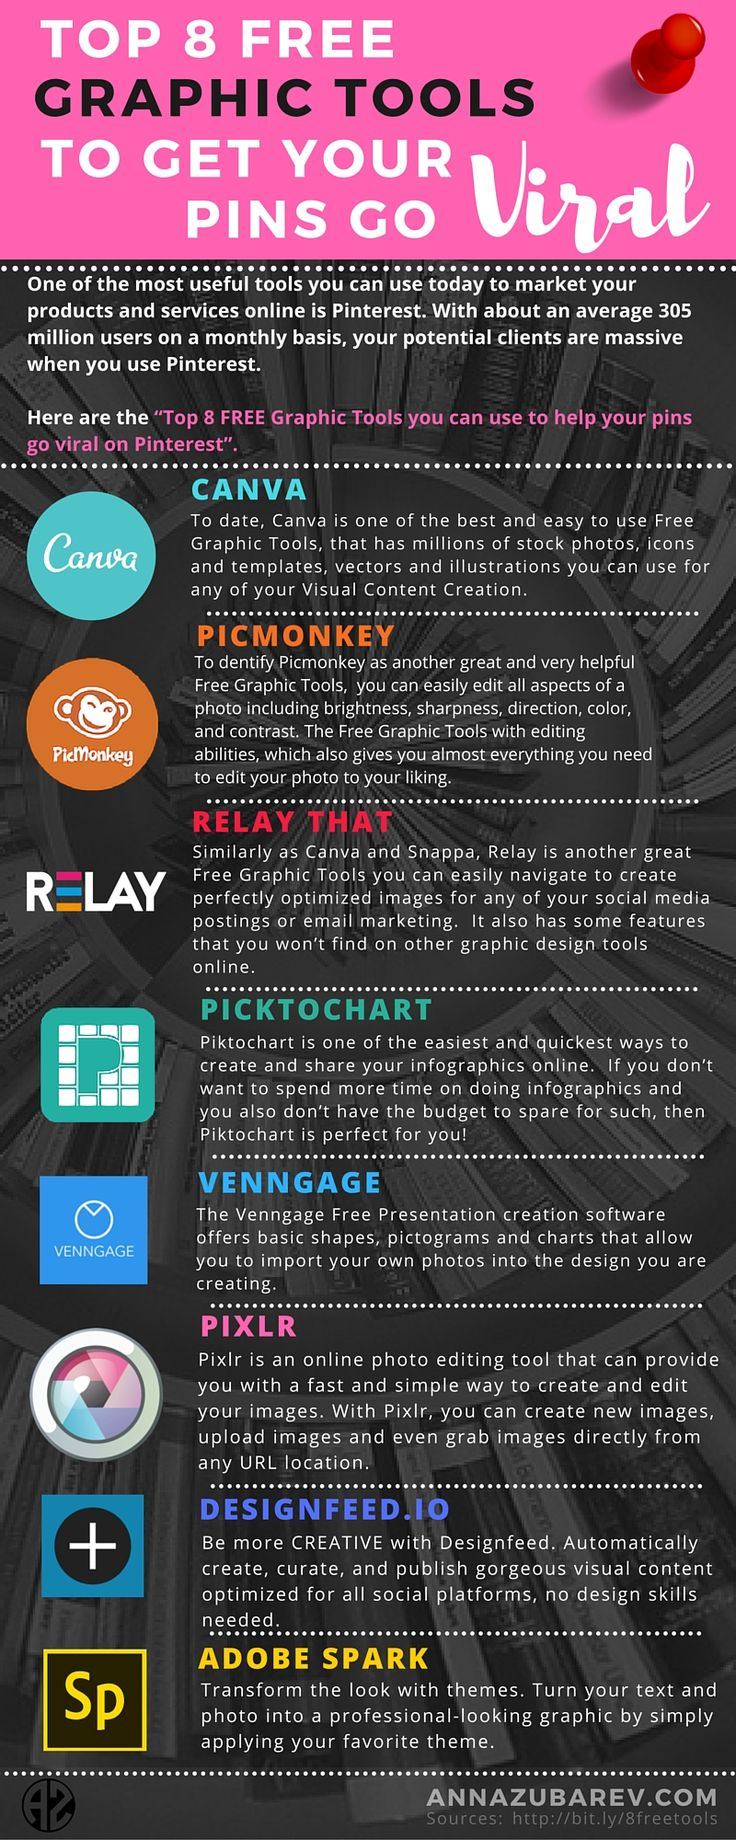 Here is a list of the Top 8 Free Graphic Tools for all your visual content creation.   These apps are super user-friendly and most of them available both in mobile and desktop versions.   So you can you use them on the go and create any visual design images on the go too and which allow for me to create my viral pinnable images for Pinterest.  via @annazubarev